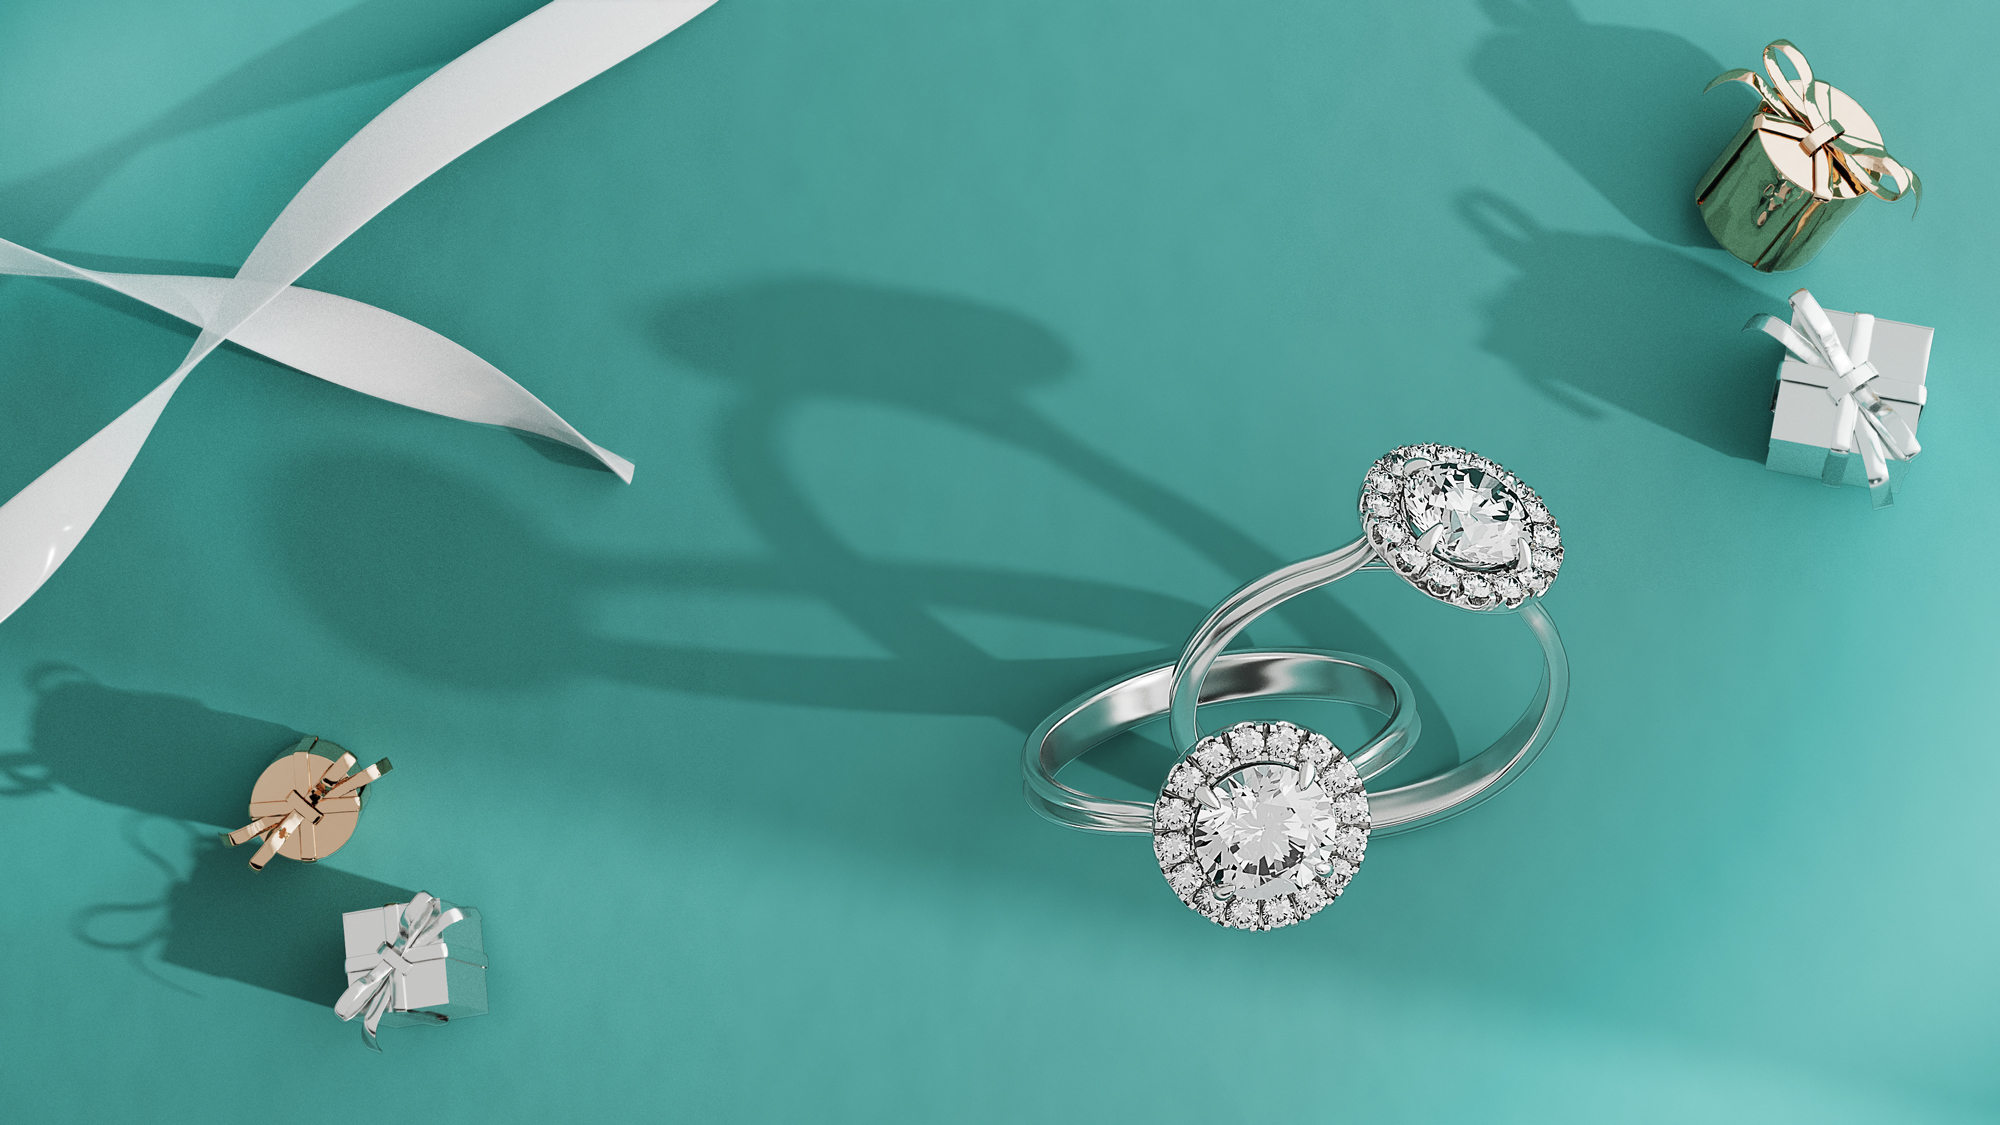 wenbo zhao-CGI Jewellery Photography- Dimond rings and tiffany color background